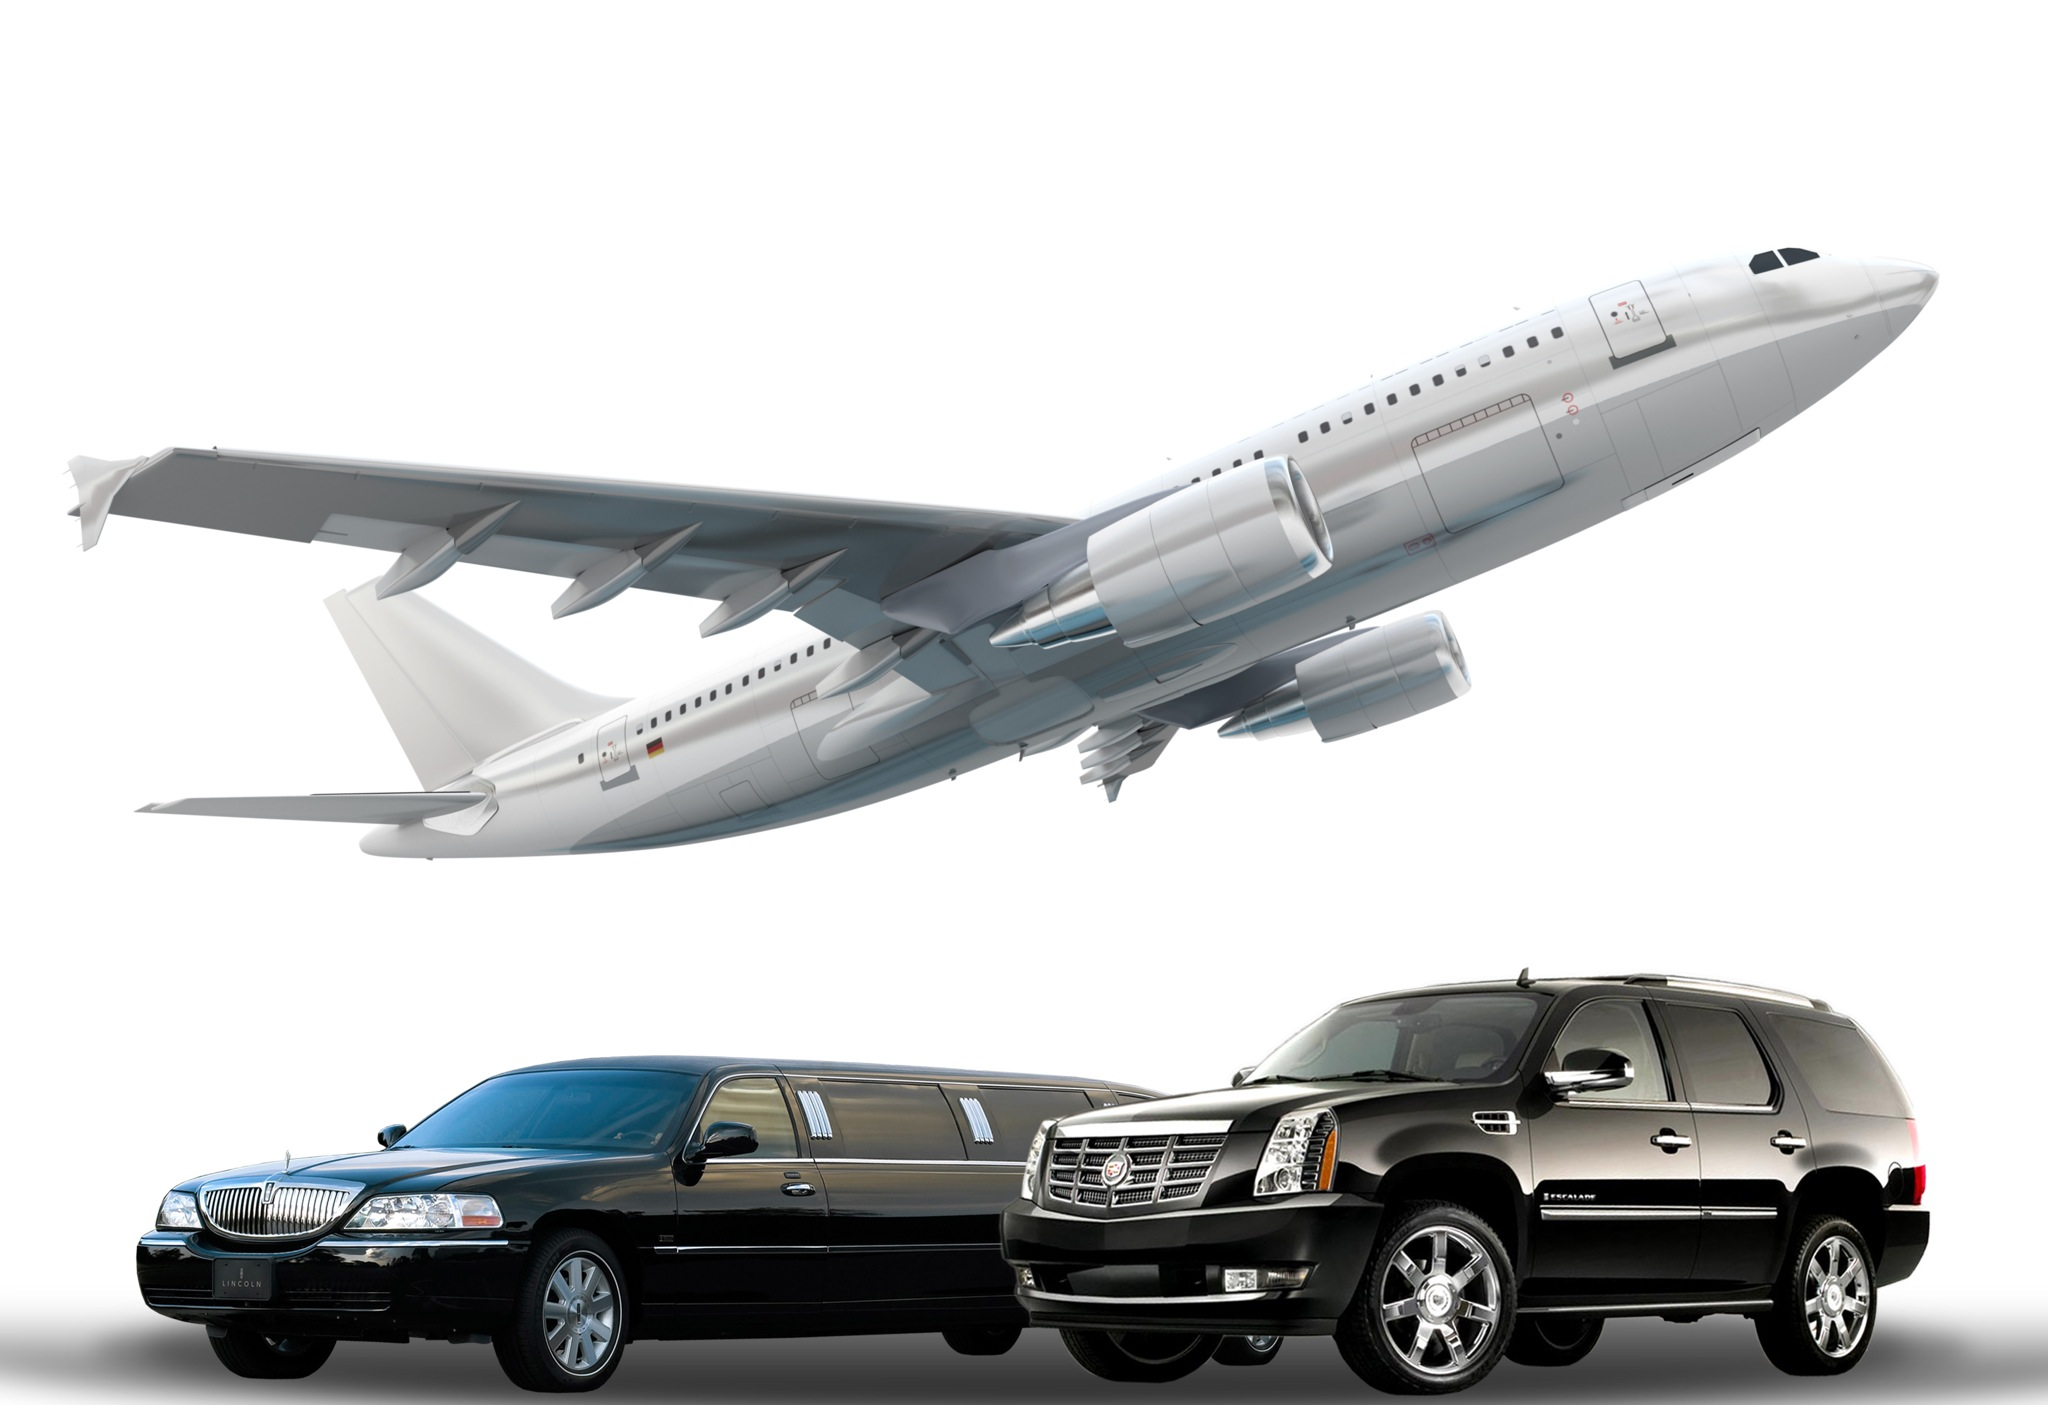 Airport Limo Service To Chicago O'Hare By ALL AMERICAN